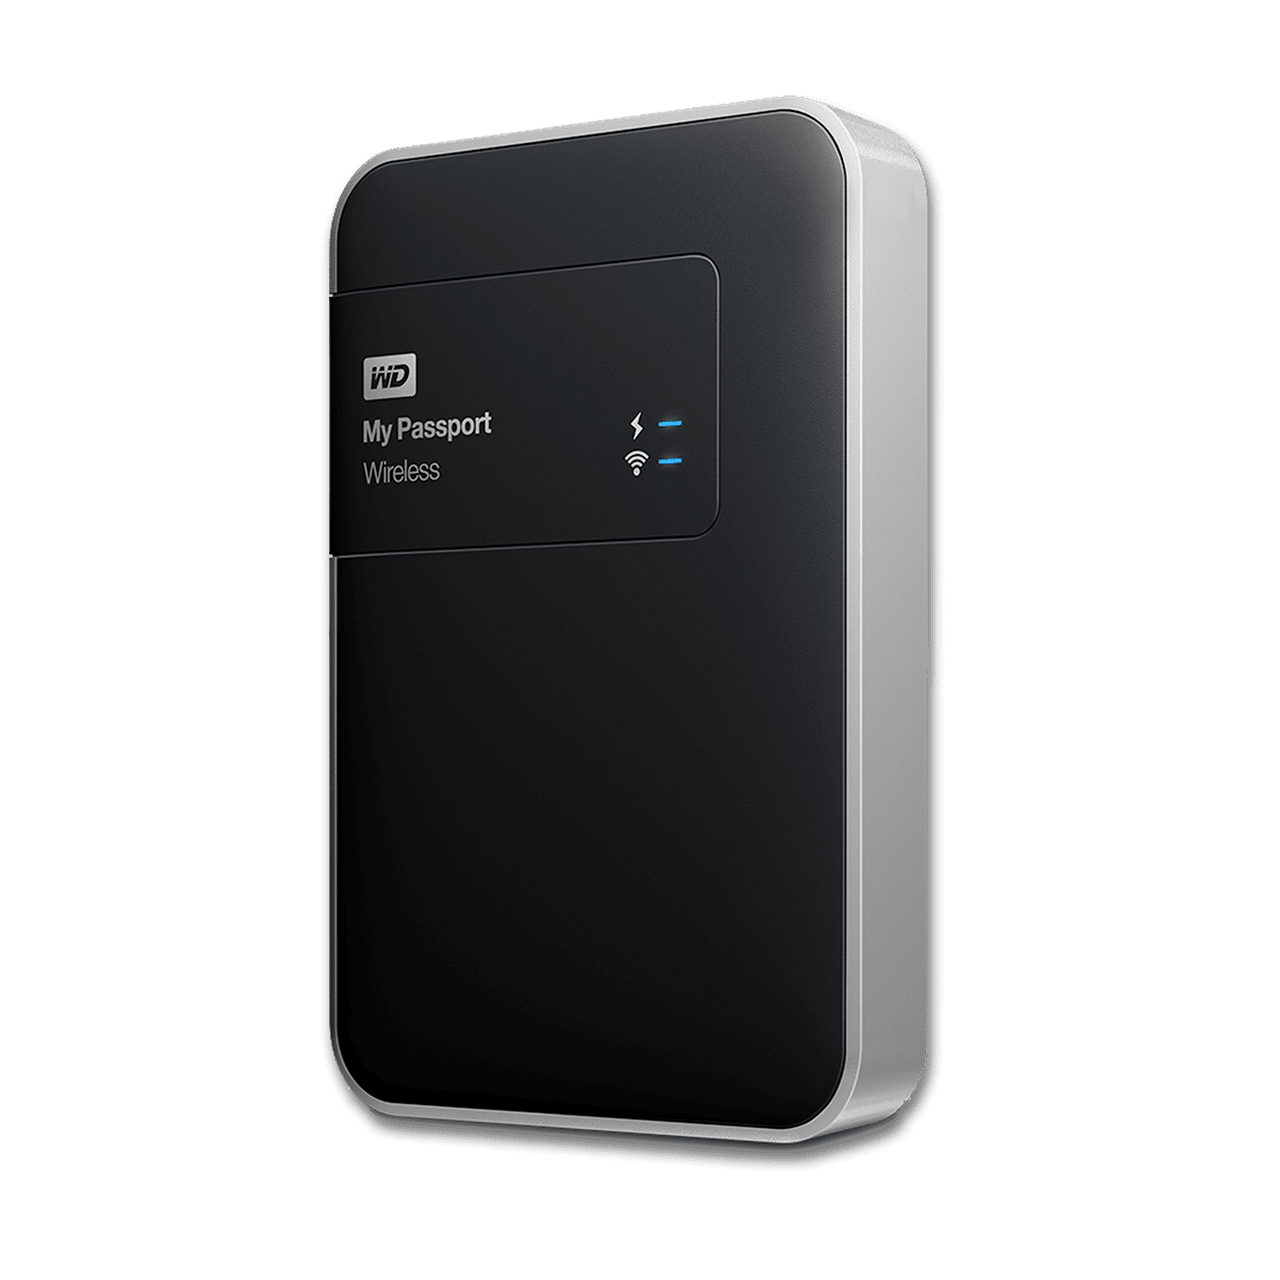 My Passport Wireless Portable Storage Product Overview.png